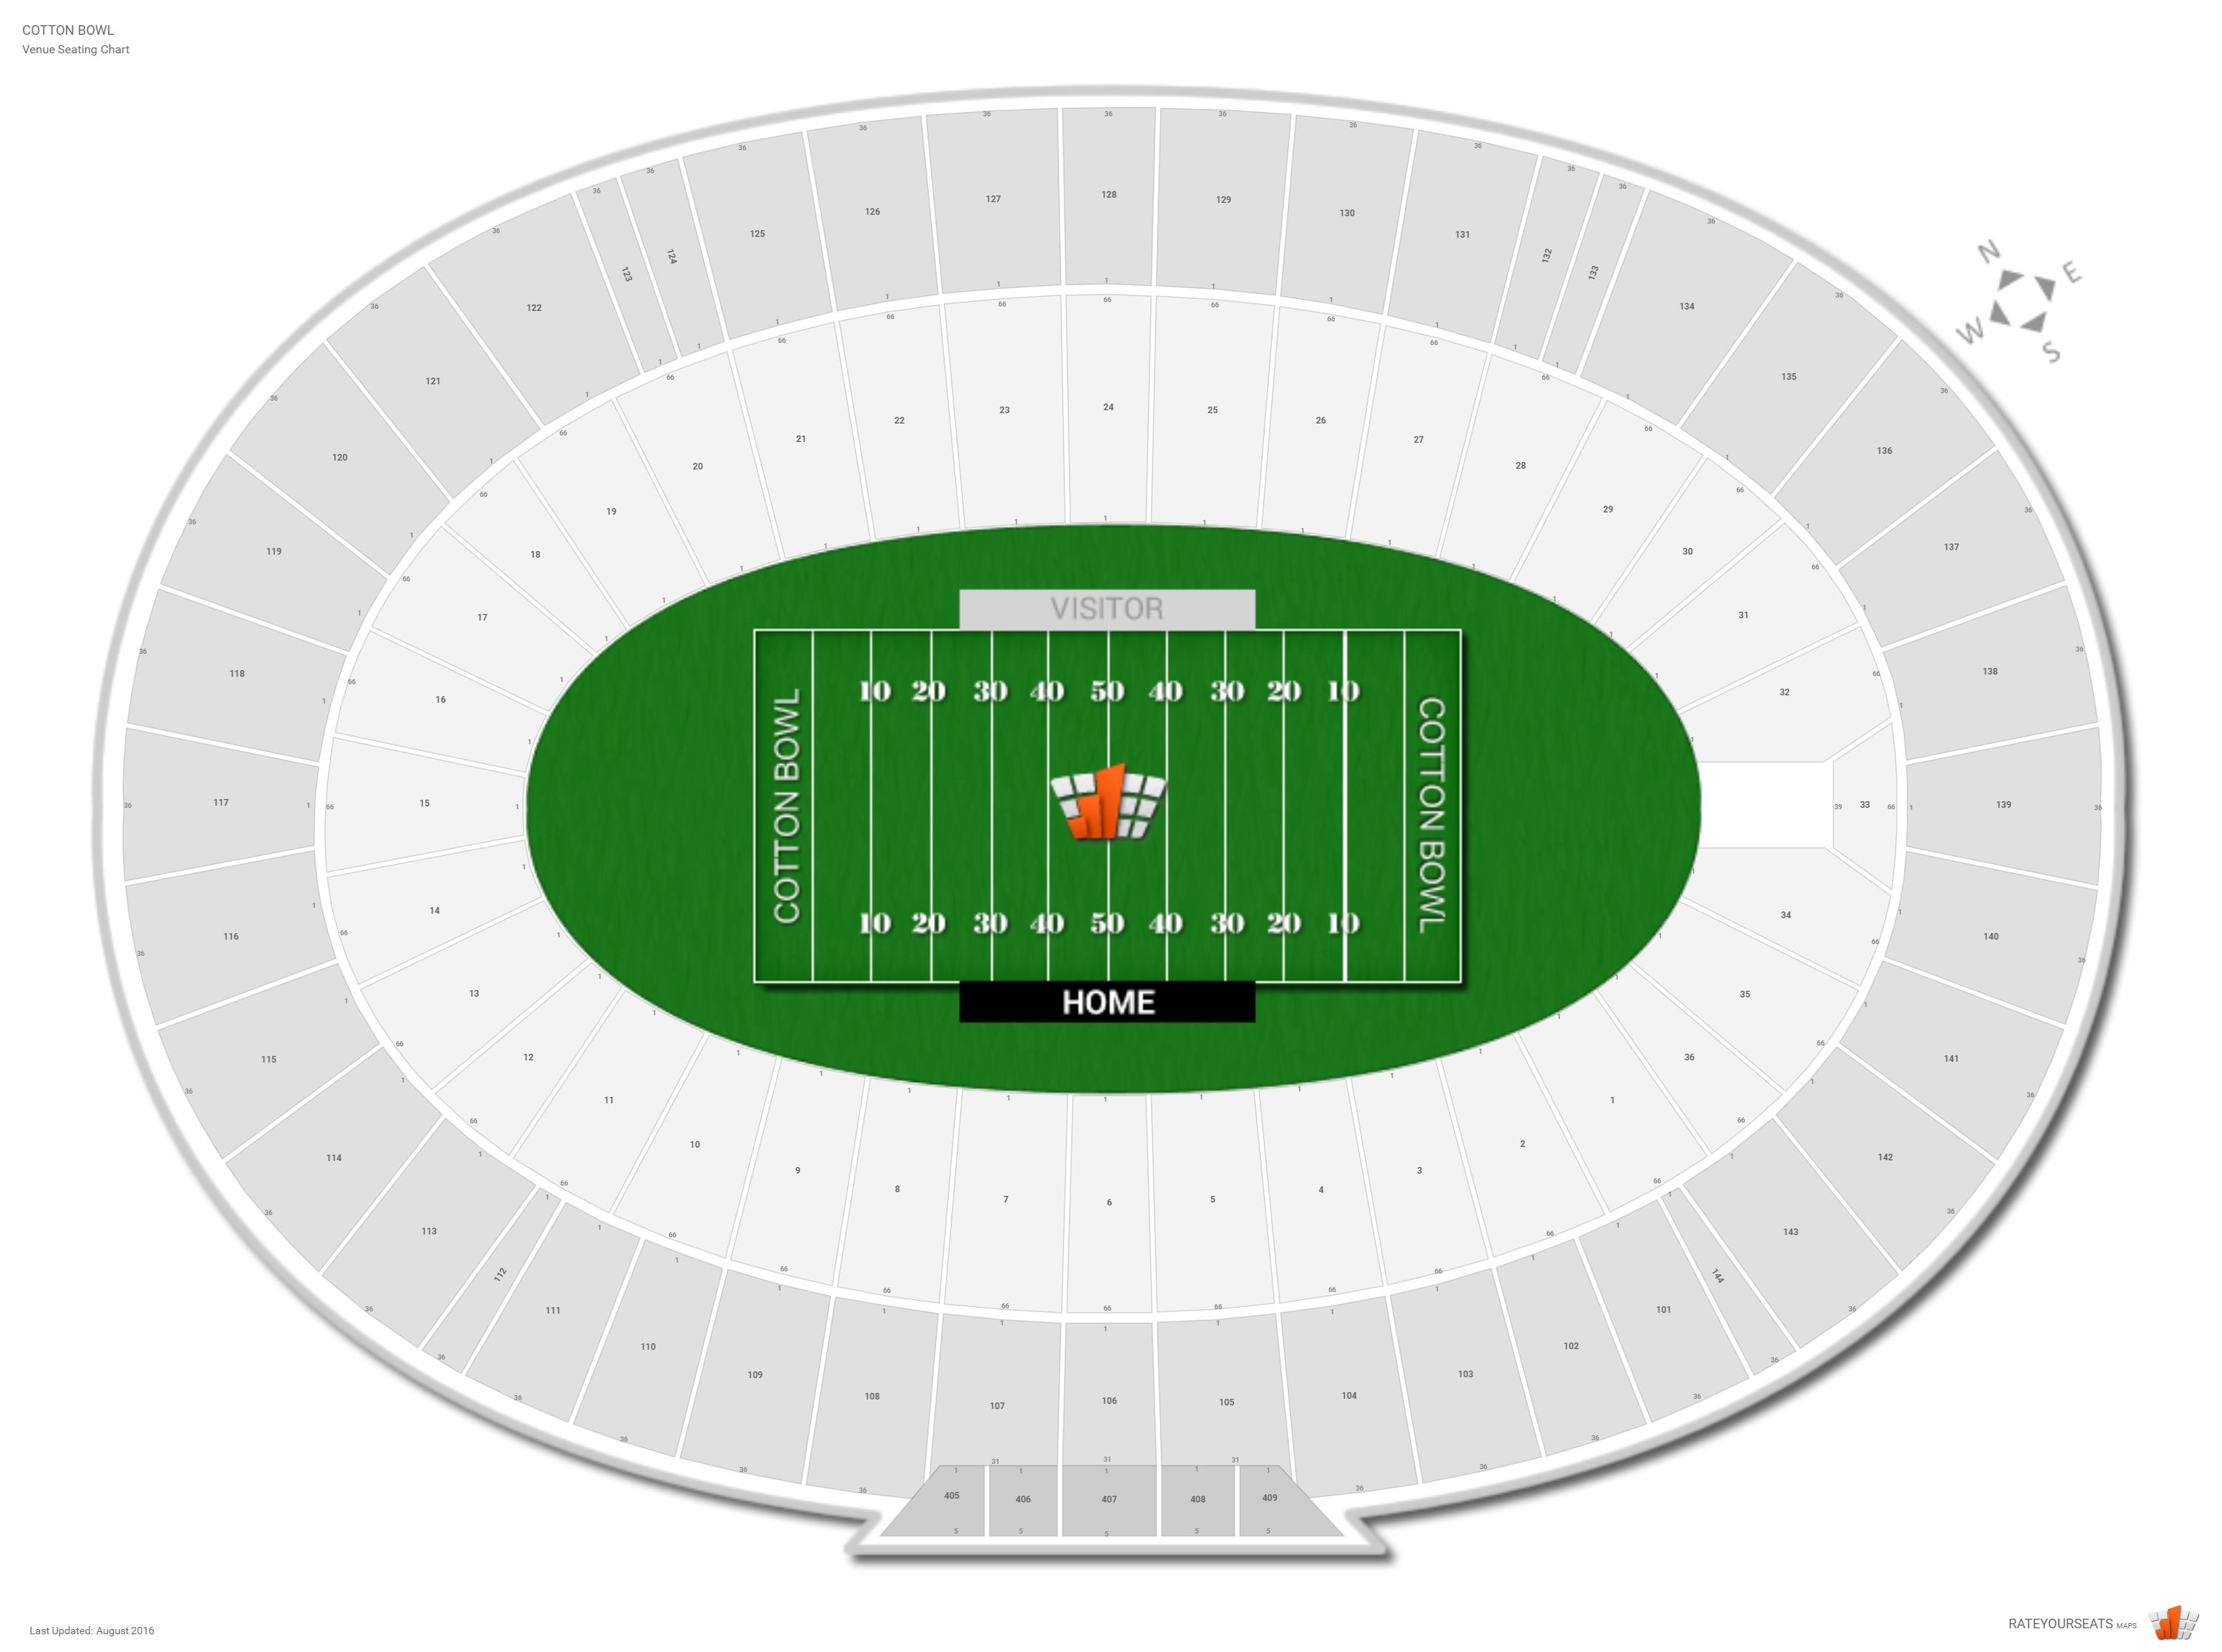 Cotton Bowl Seating Guide